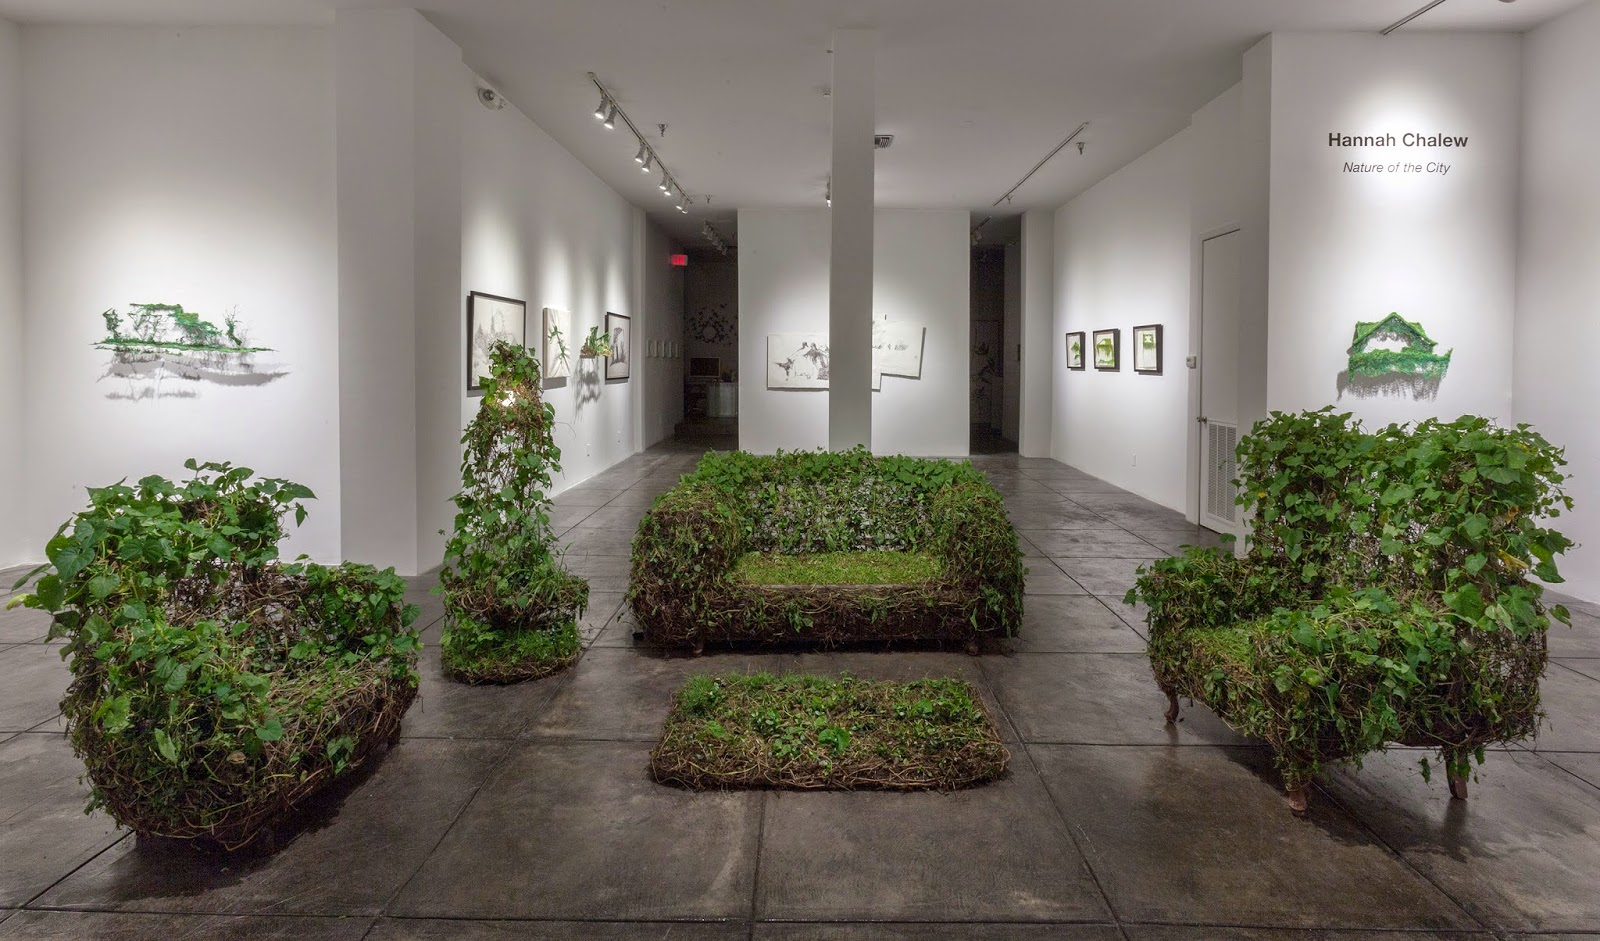 (Nature Of The City Installation View) Hannah Chalew, Living Room, 2013,  Recycled Furniture, Wire, Soil And Live Plants